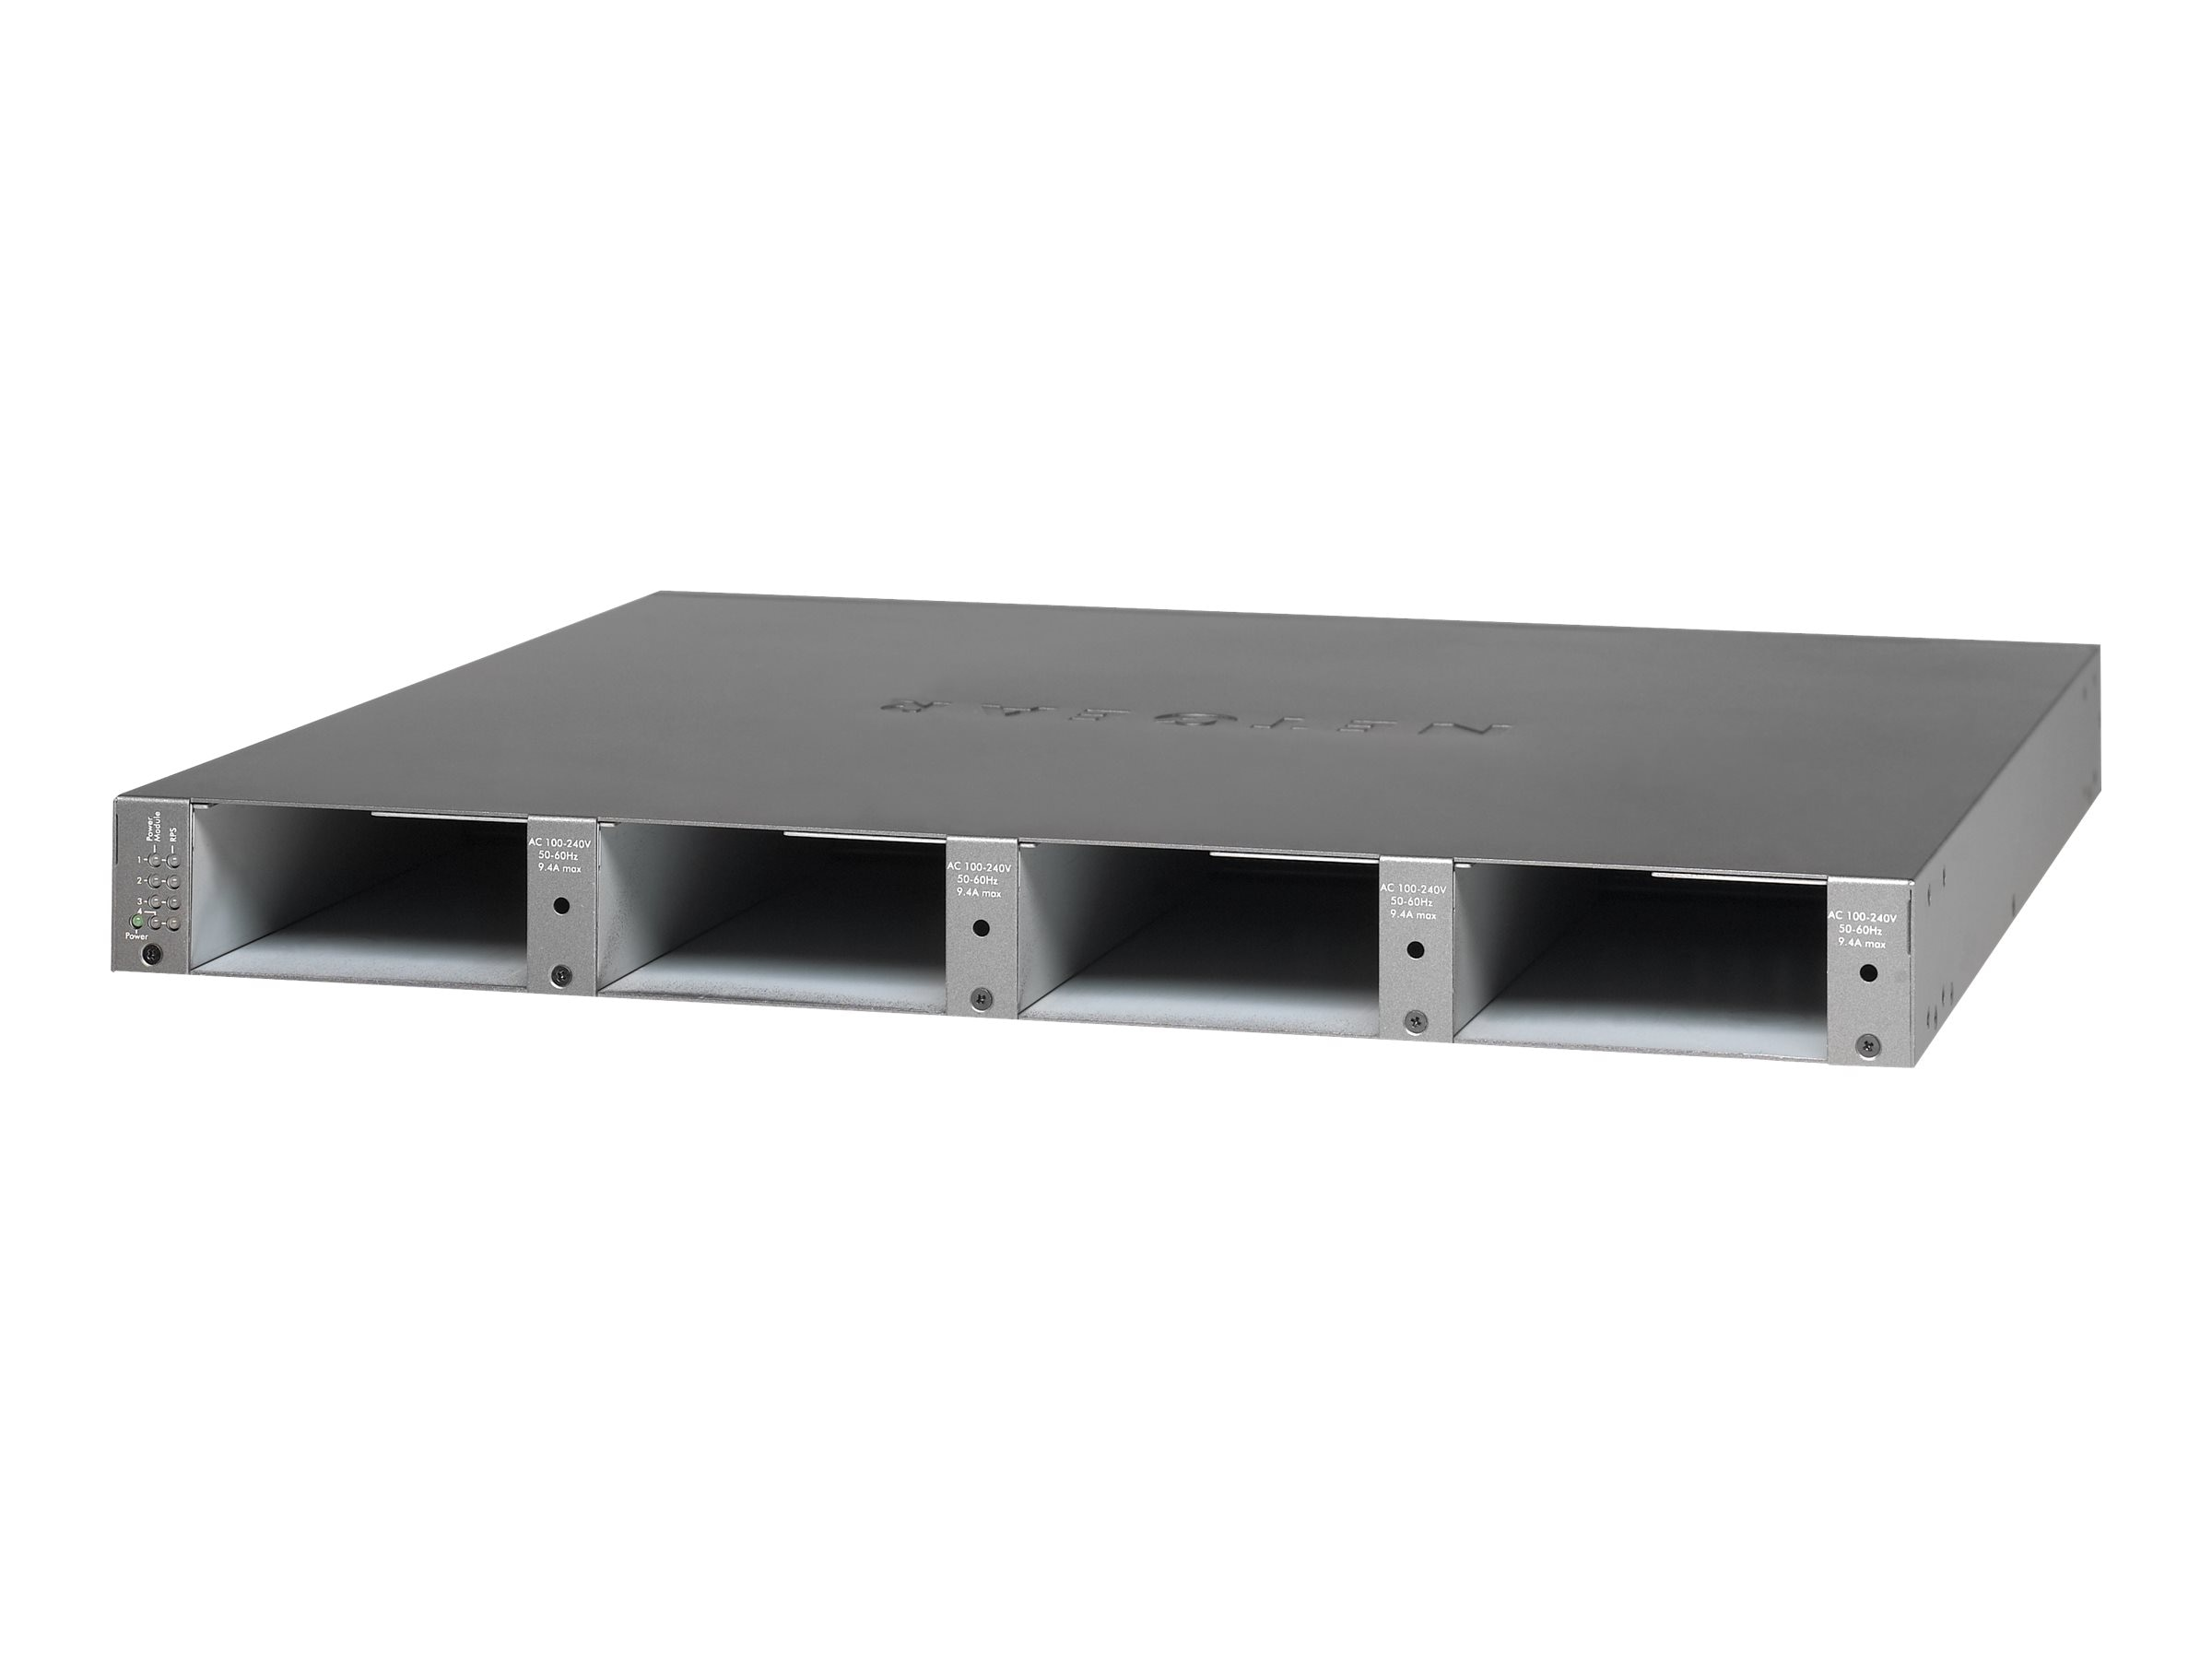 Netgear RPS4000v2 1U Power Shelf, (4) Slots for Power Modules